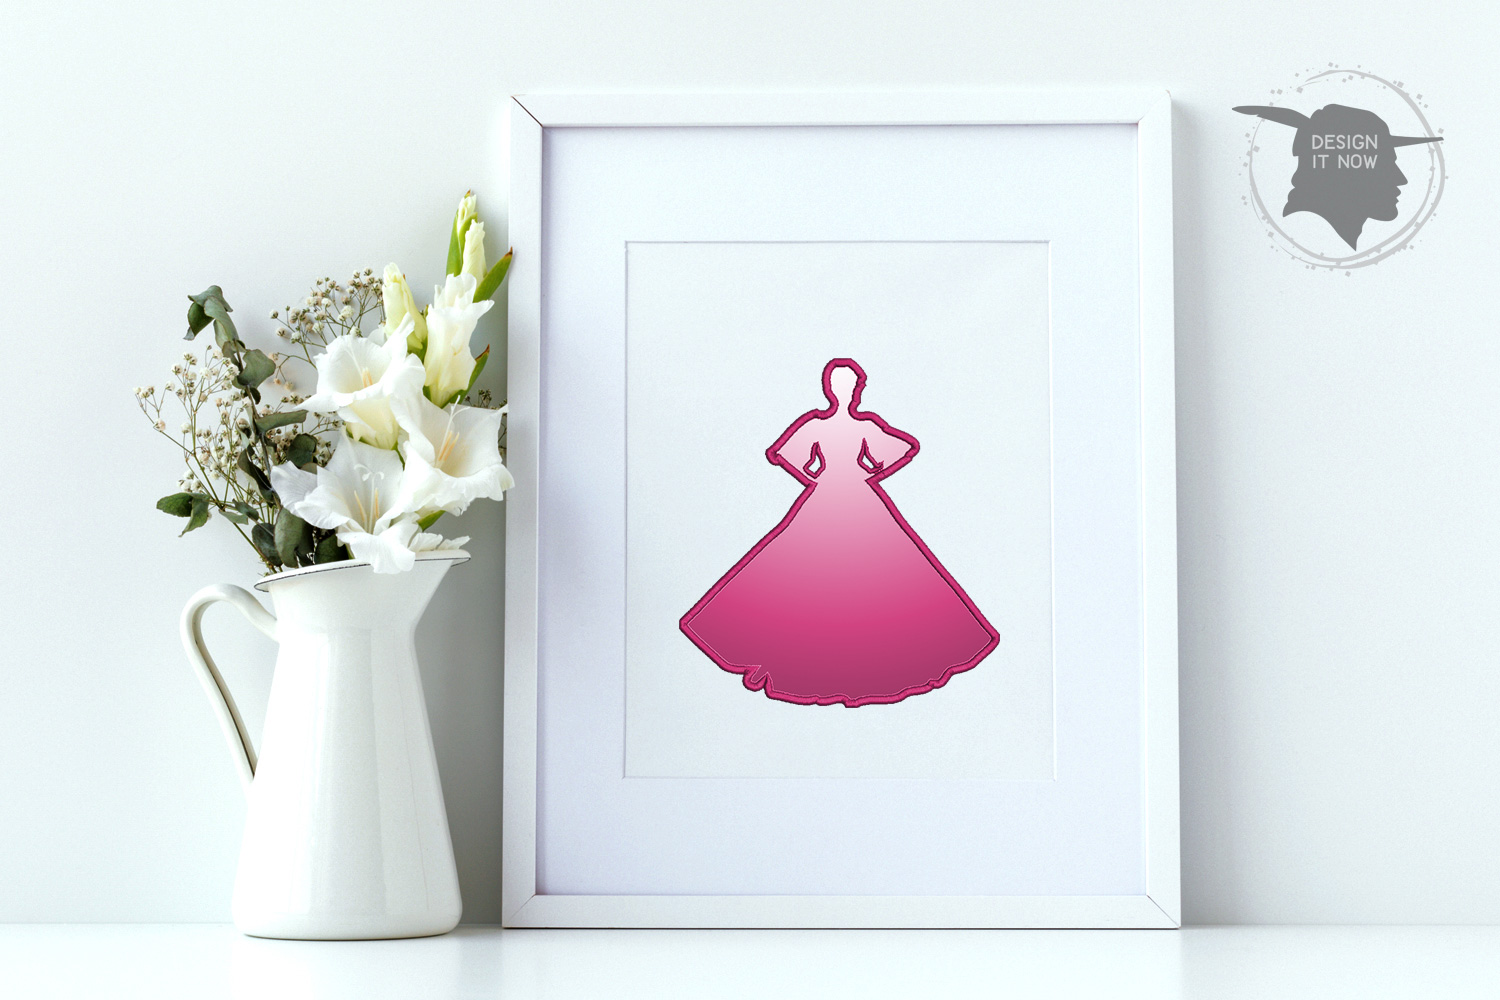 Princess Applique Embroidery Design, Crown Embroidery Art example image 2